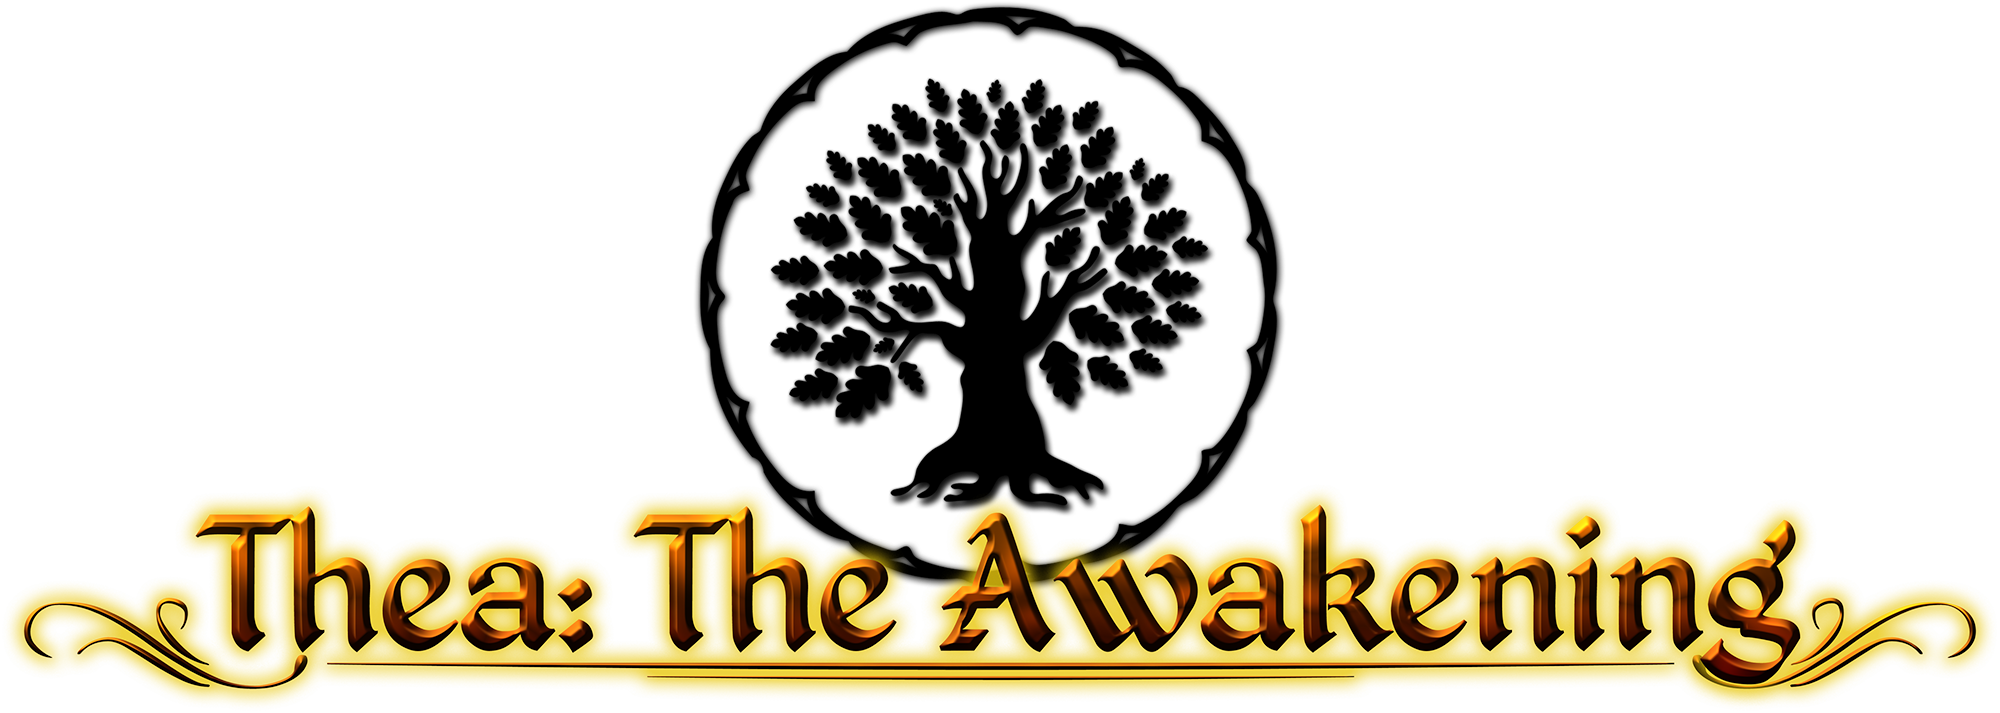 Thea The Awakening Video Game Reviews And Previews Pc Ps4 Xbox